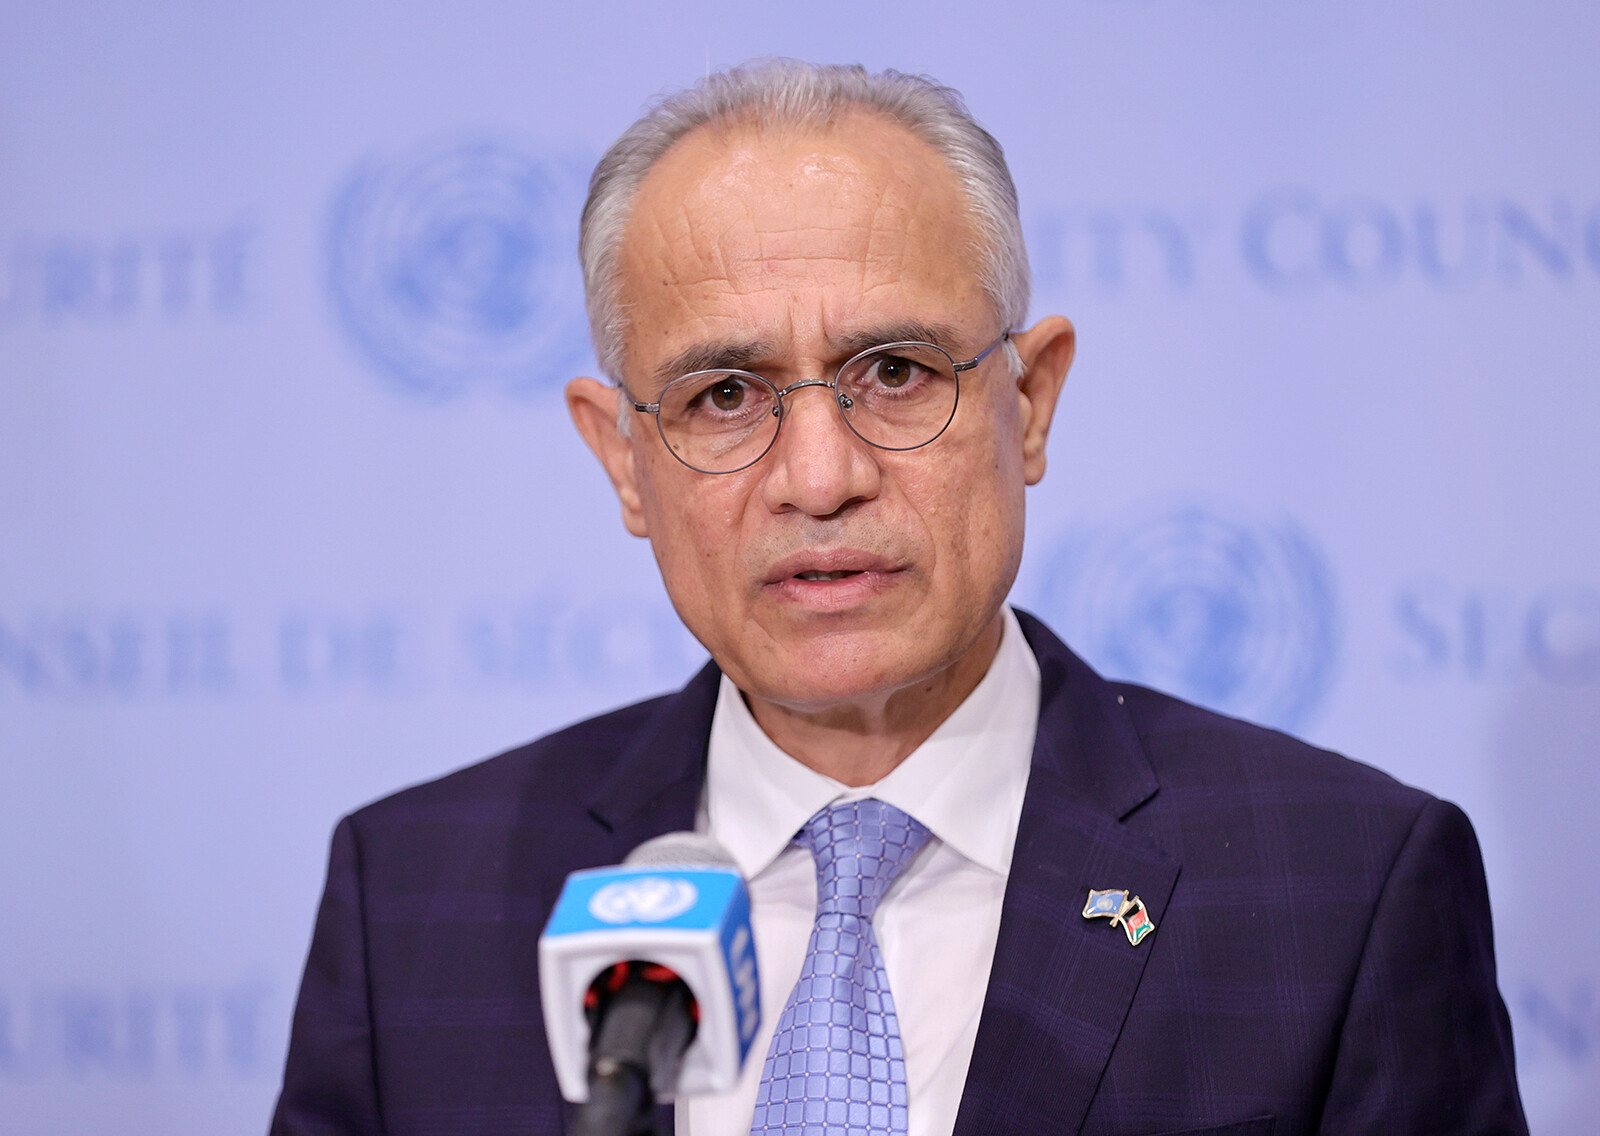 <i>Luiz Rampelotto/DPA/Picture Alliance/SIPA</i><br/>Afghanistan's UN representative Ghulam Isaczai -- an appointee of the country's former democratic government